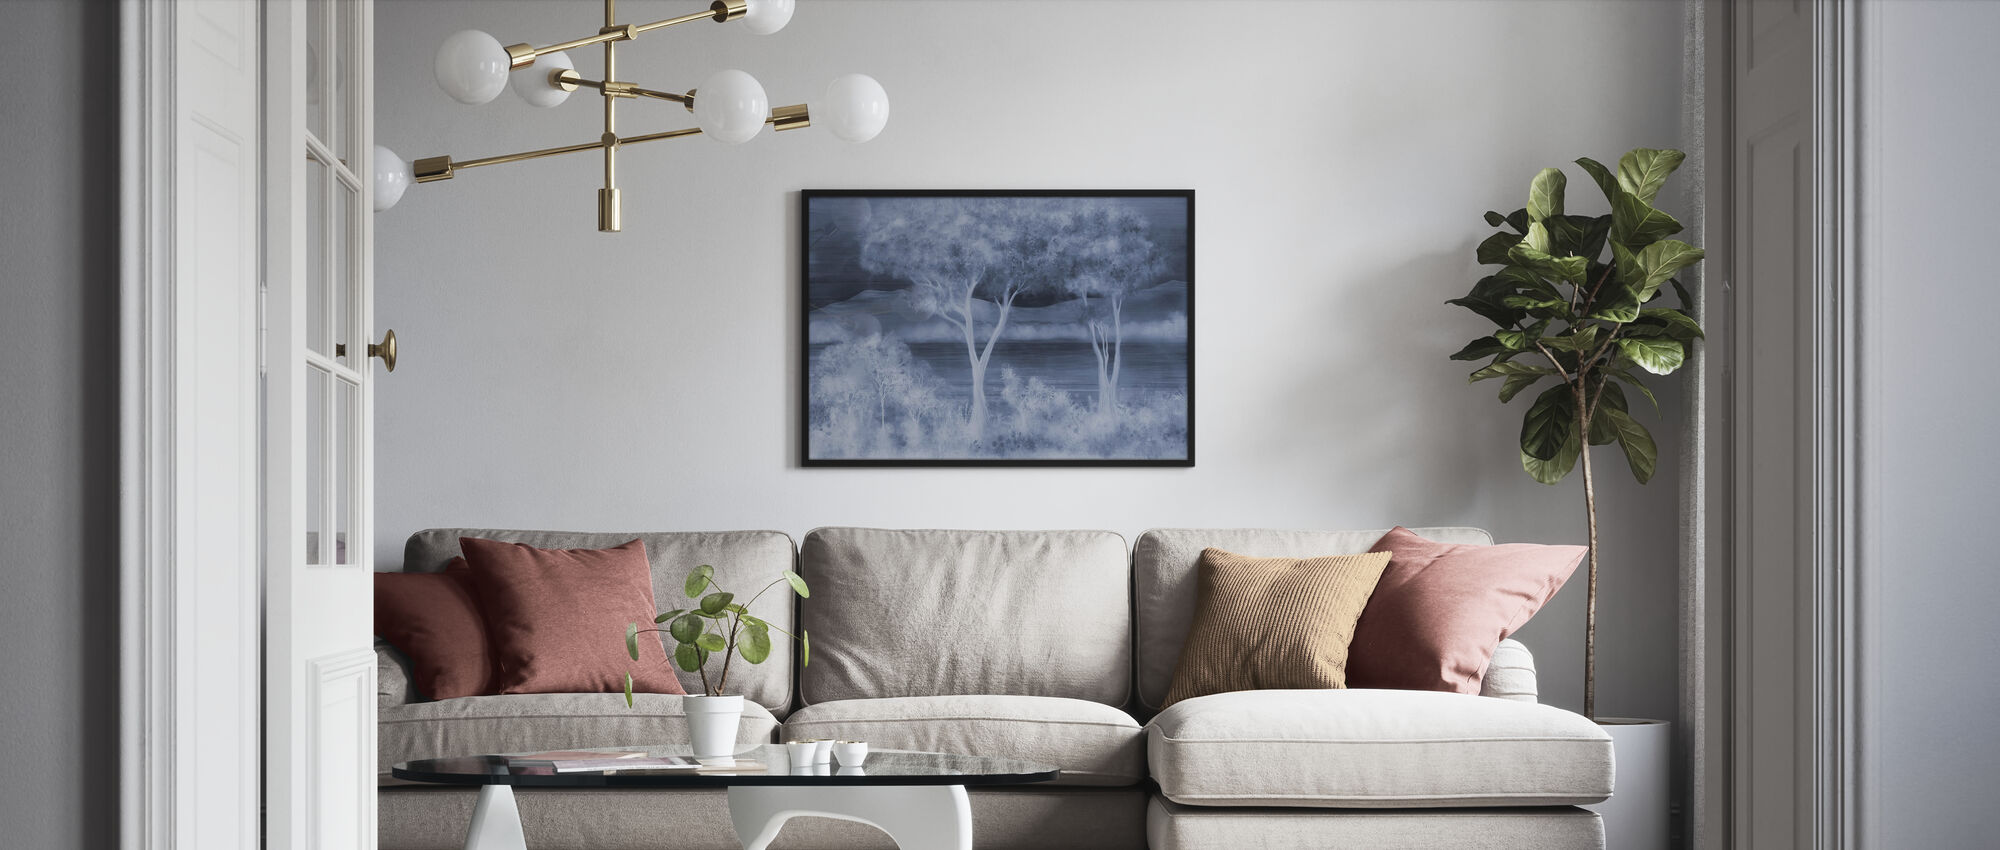 Lay of the Land - Cobalt - Poster - Living Room